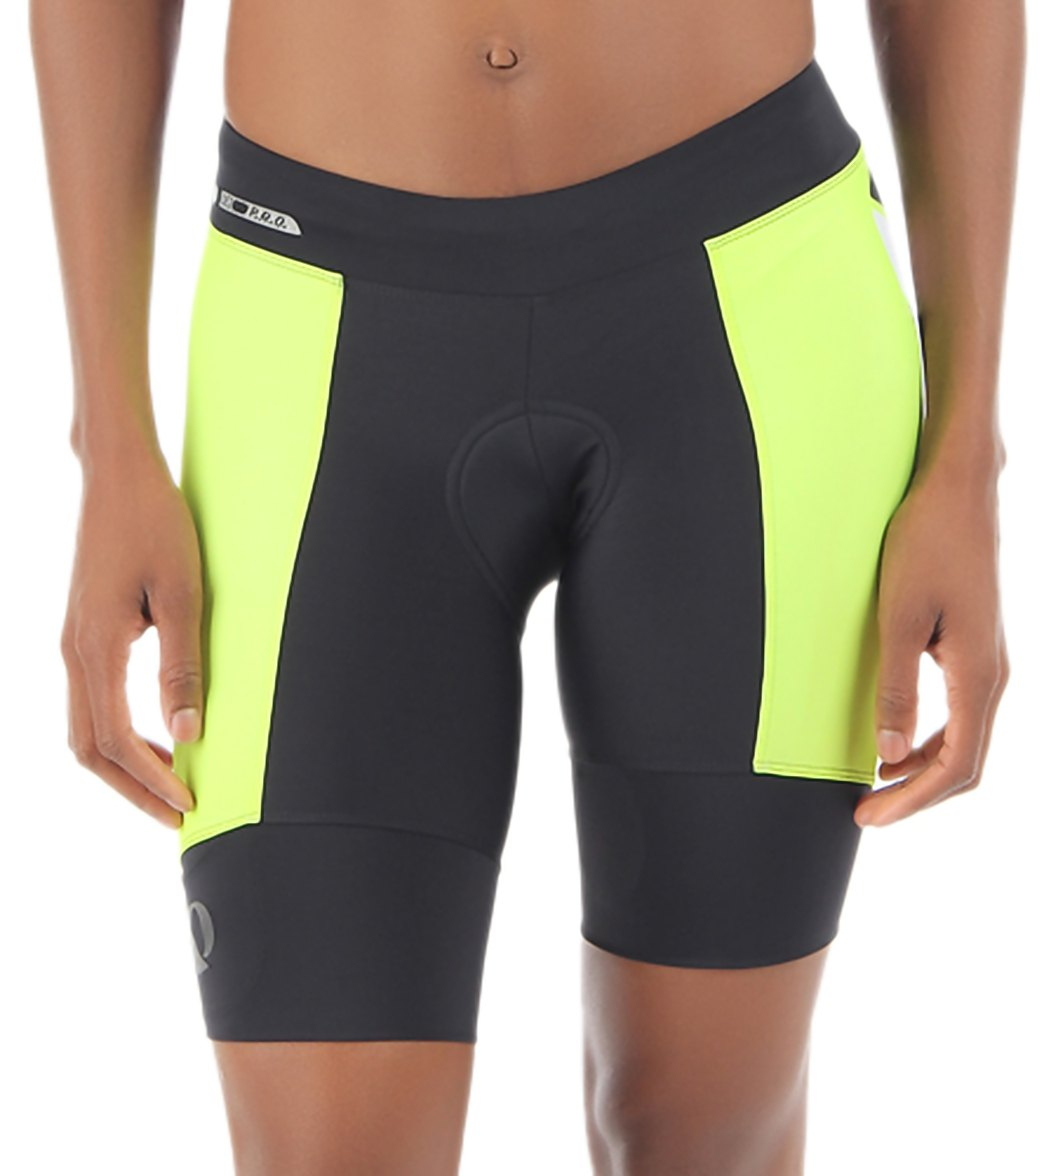 Pearl Izumi Women s P.R.O. Leader Cycling Short at SwimOutlet.com - Free  Shipping 280f6c912